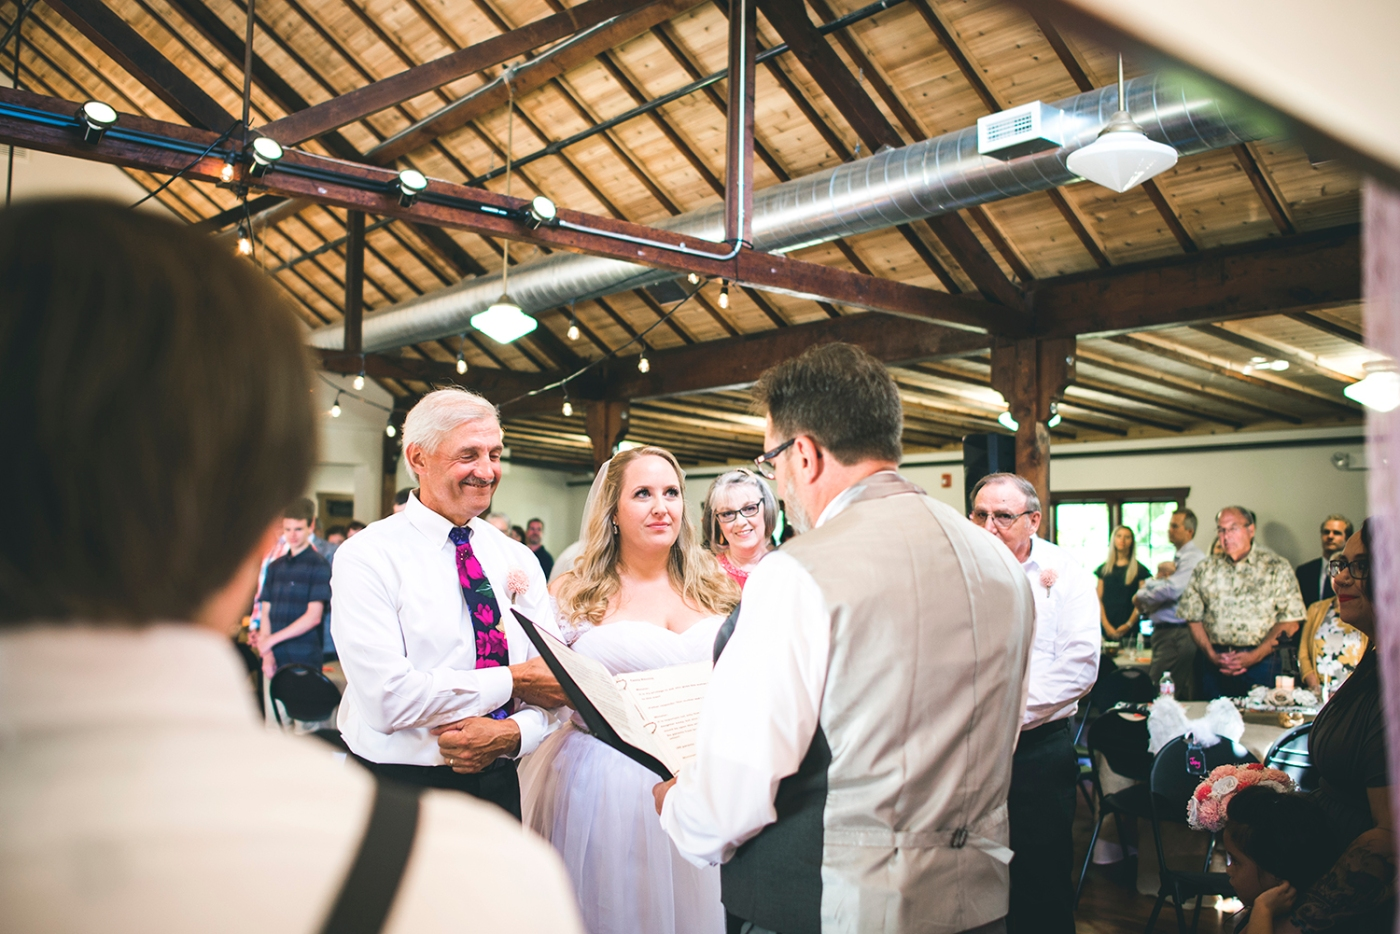 Jane_S_photography_Katie_and_Steve_2016_Des_Moines_Marina_Wedding_DSC_1687